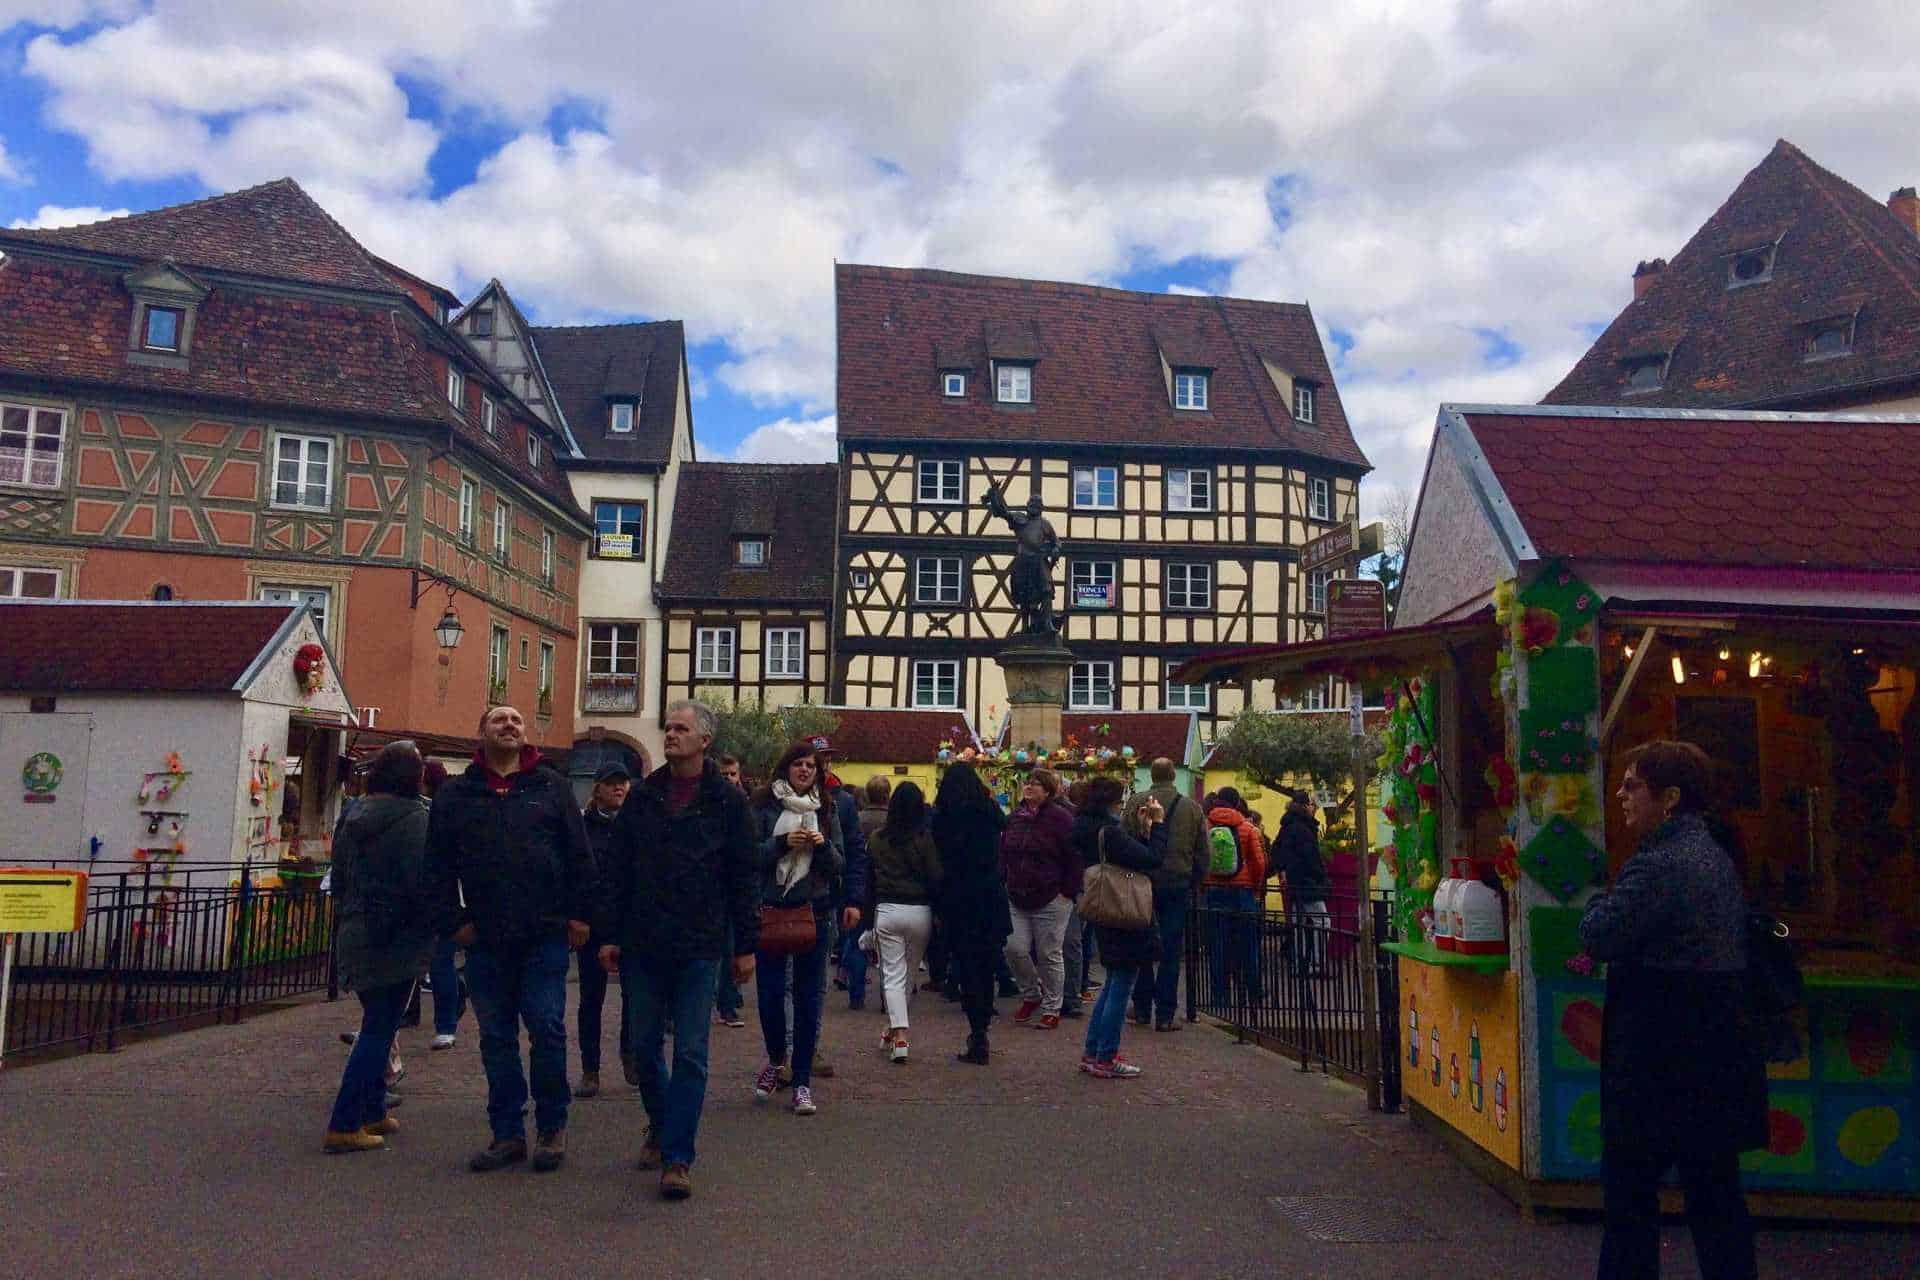 Easter market at Place de l'Ancienne Douane